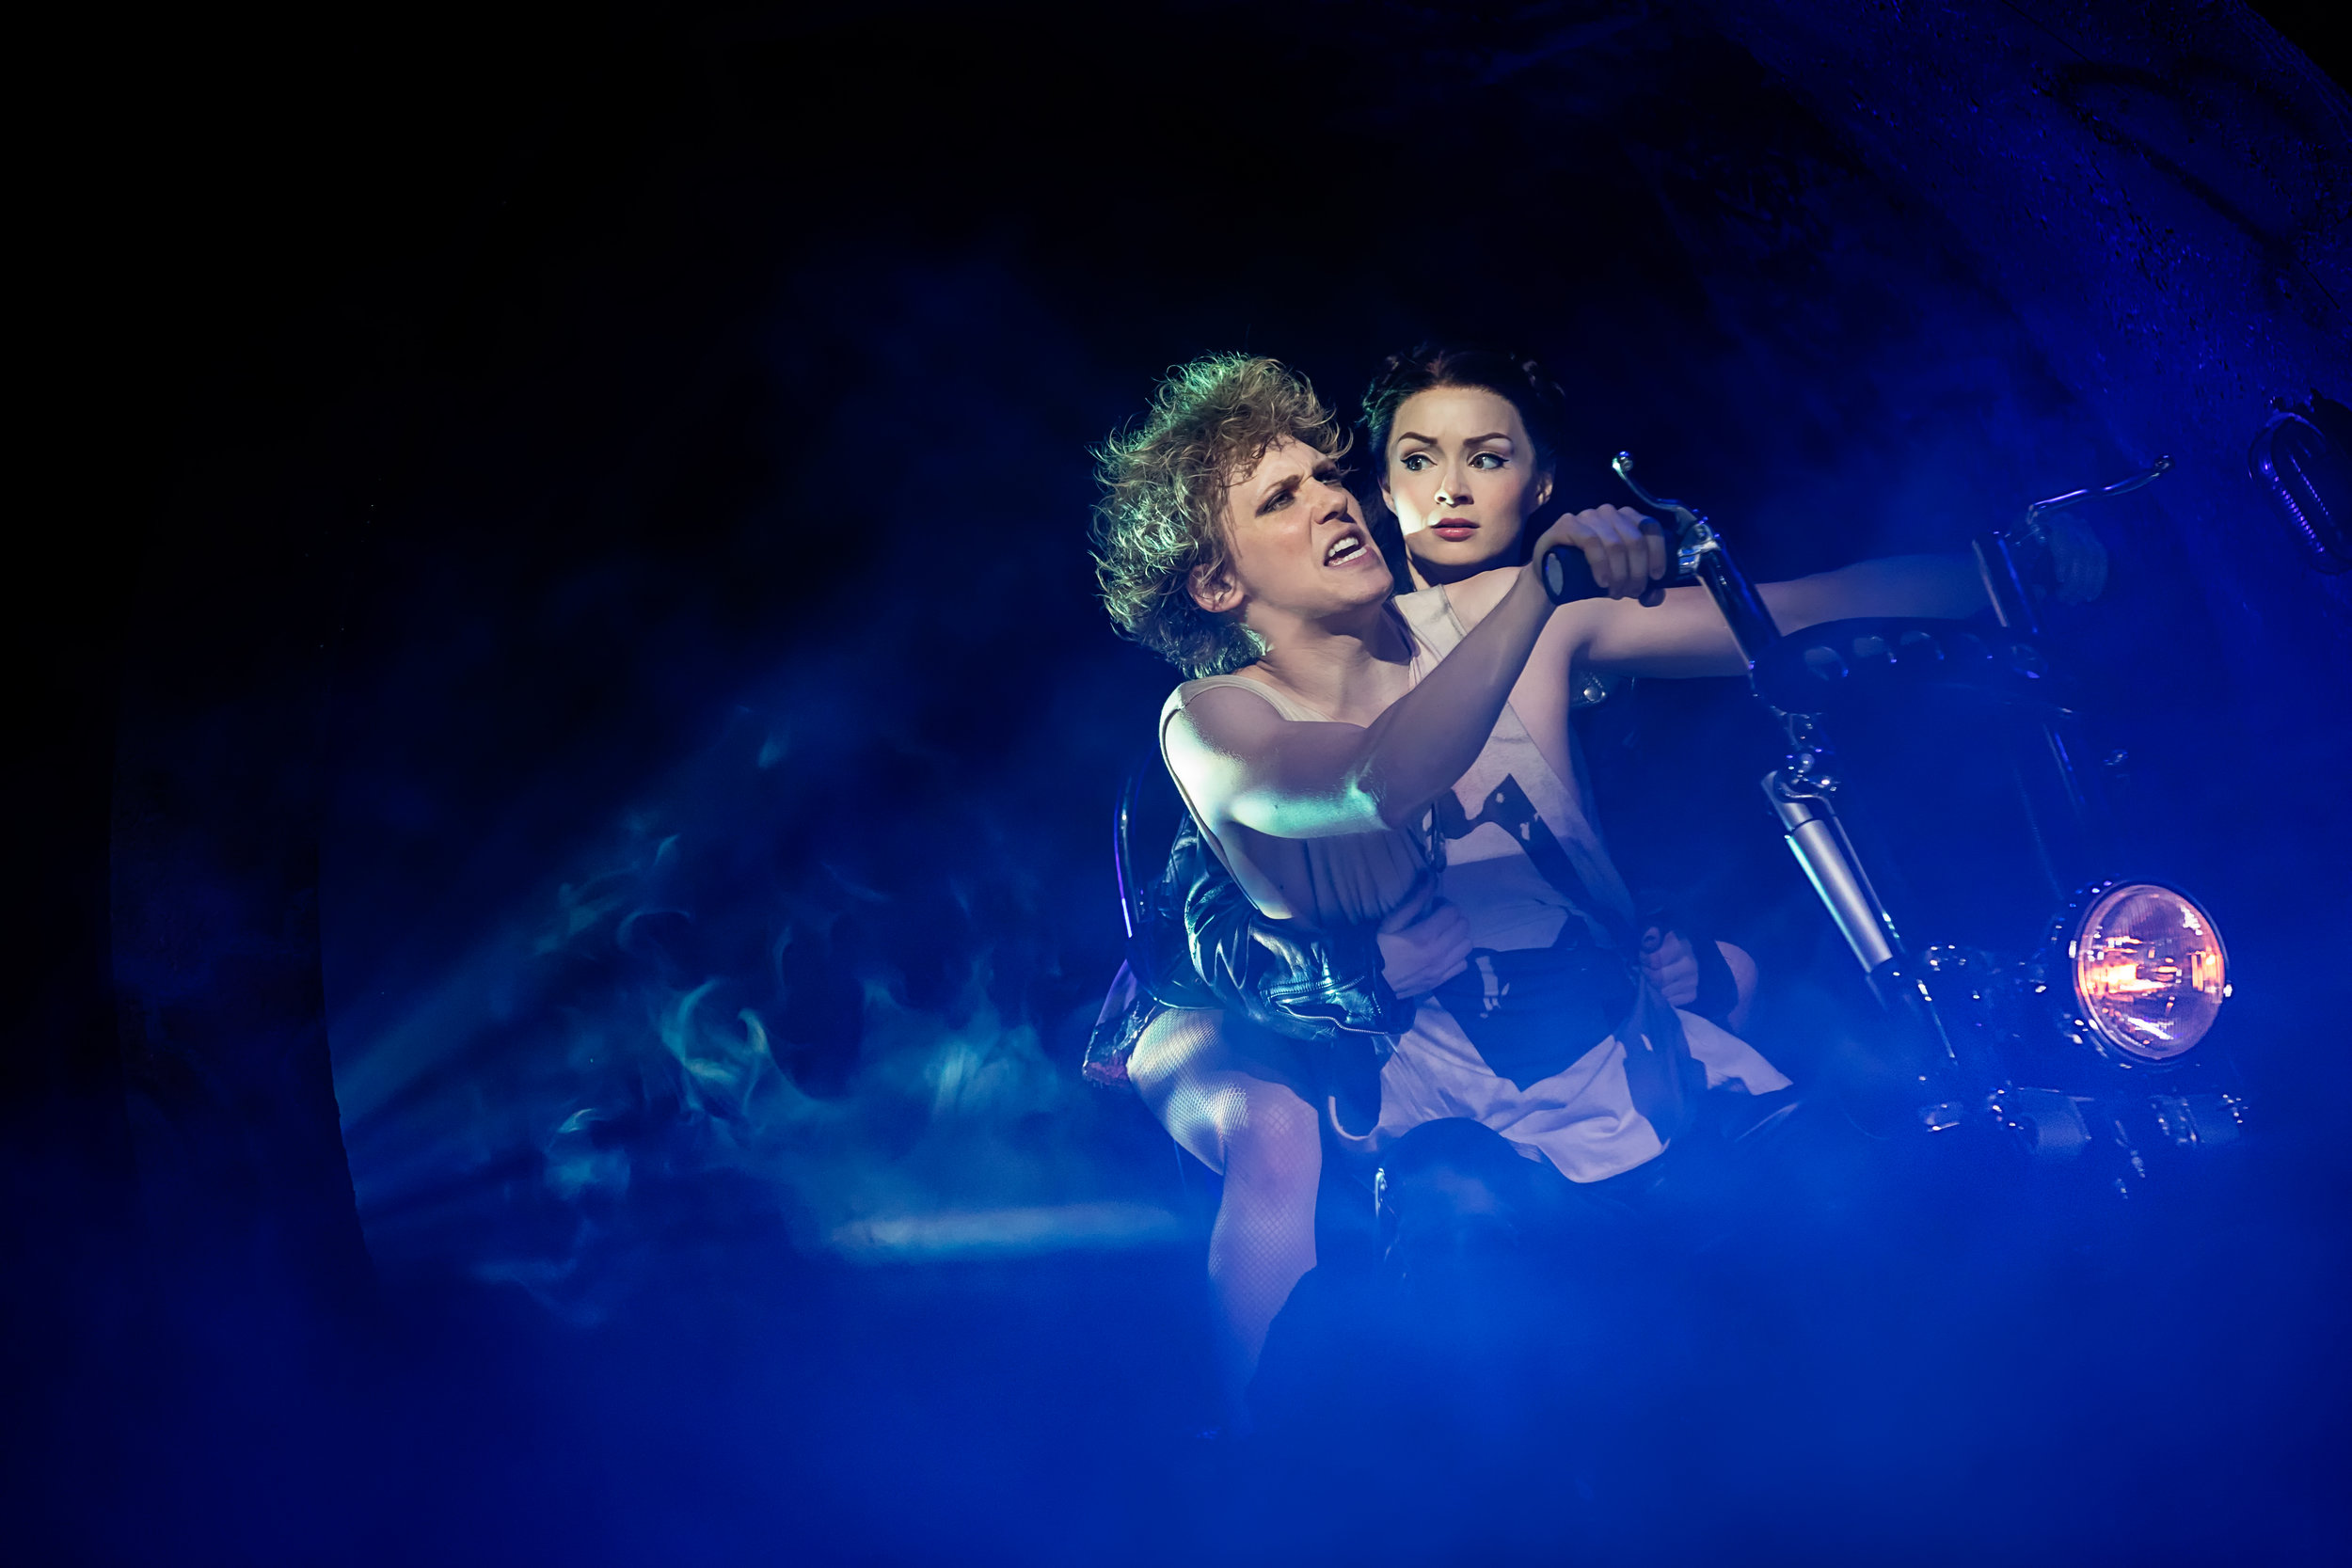 Andrew Polec (Strat) and Christina Bennington (Raven) as star-crossed lovers. Photo Credit: Little Fang Photo.